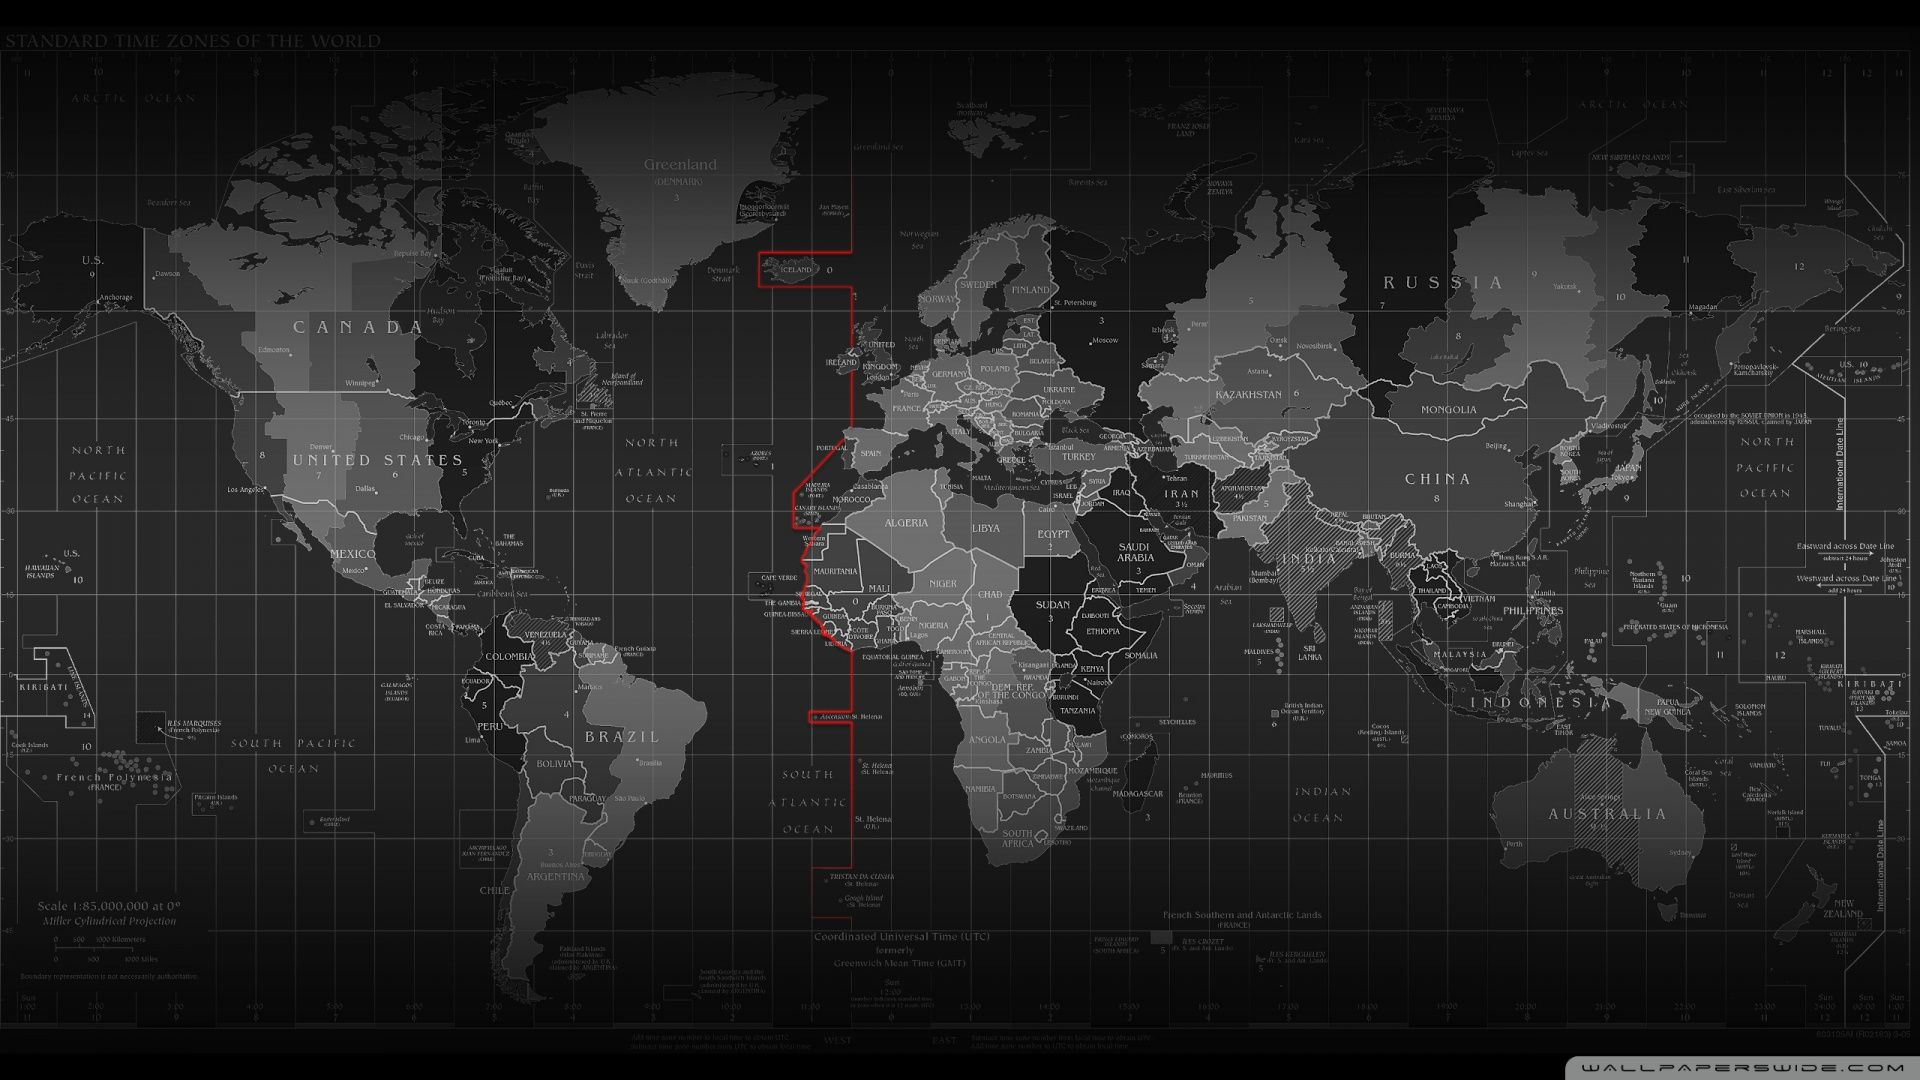 Pin By Best Wallpaper On I Like World Map Wallpaper World Wallpaper Cool World Map